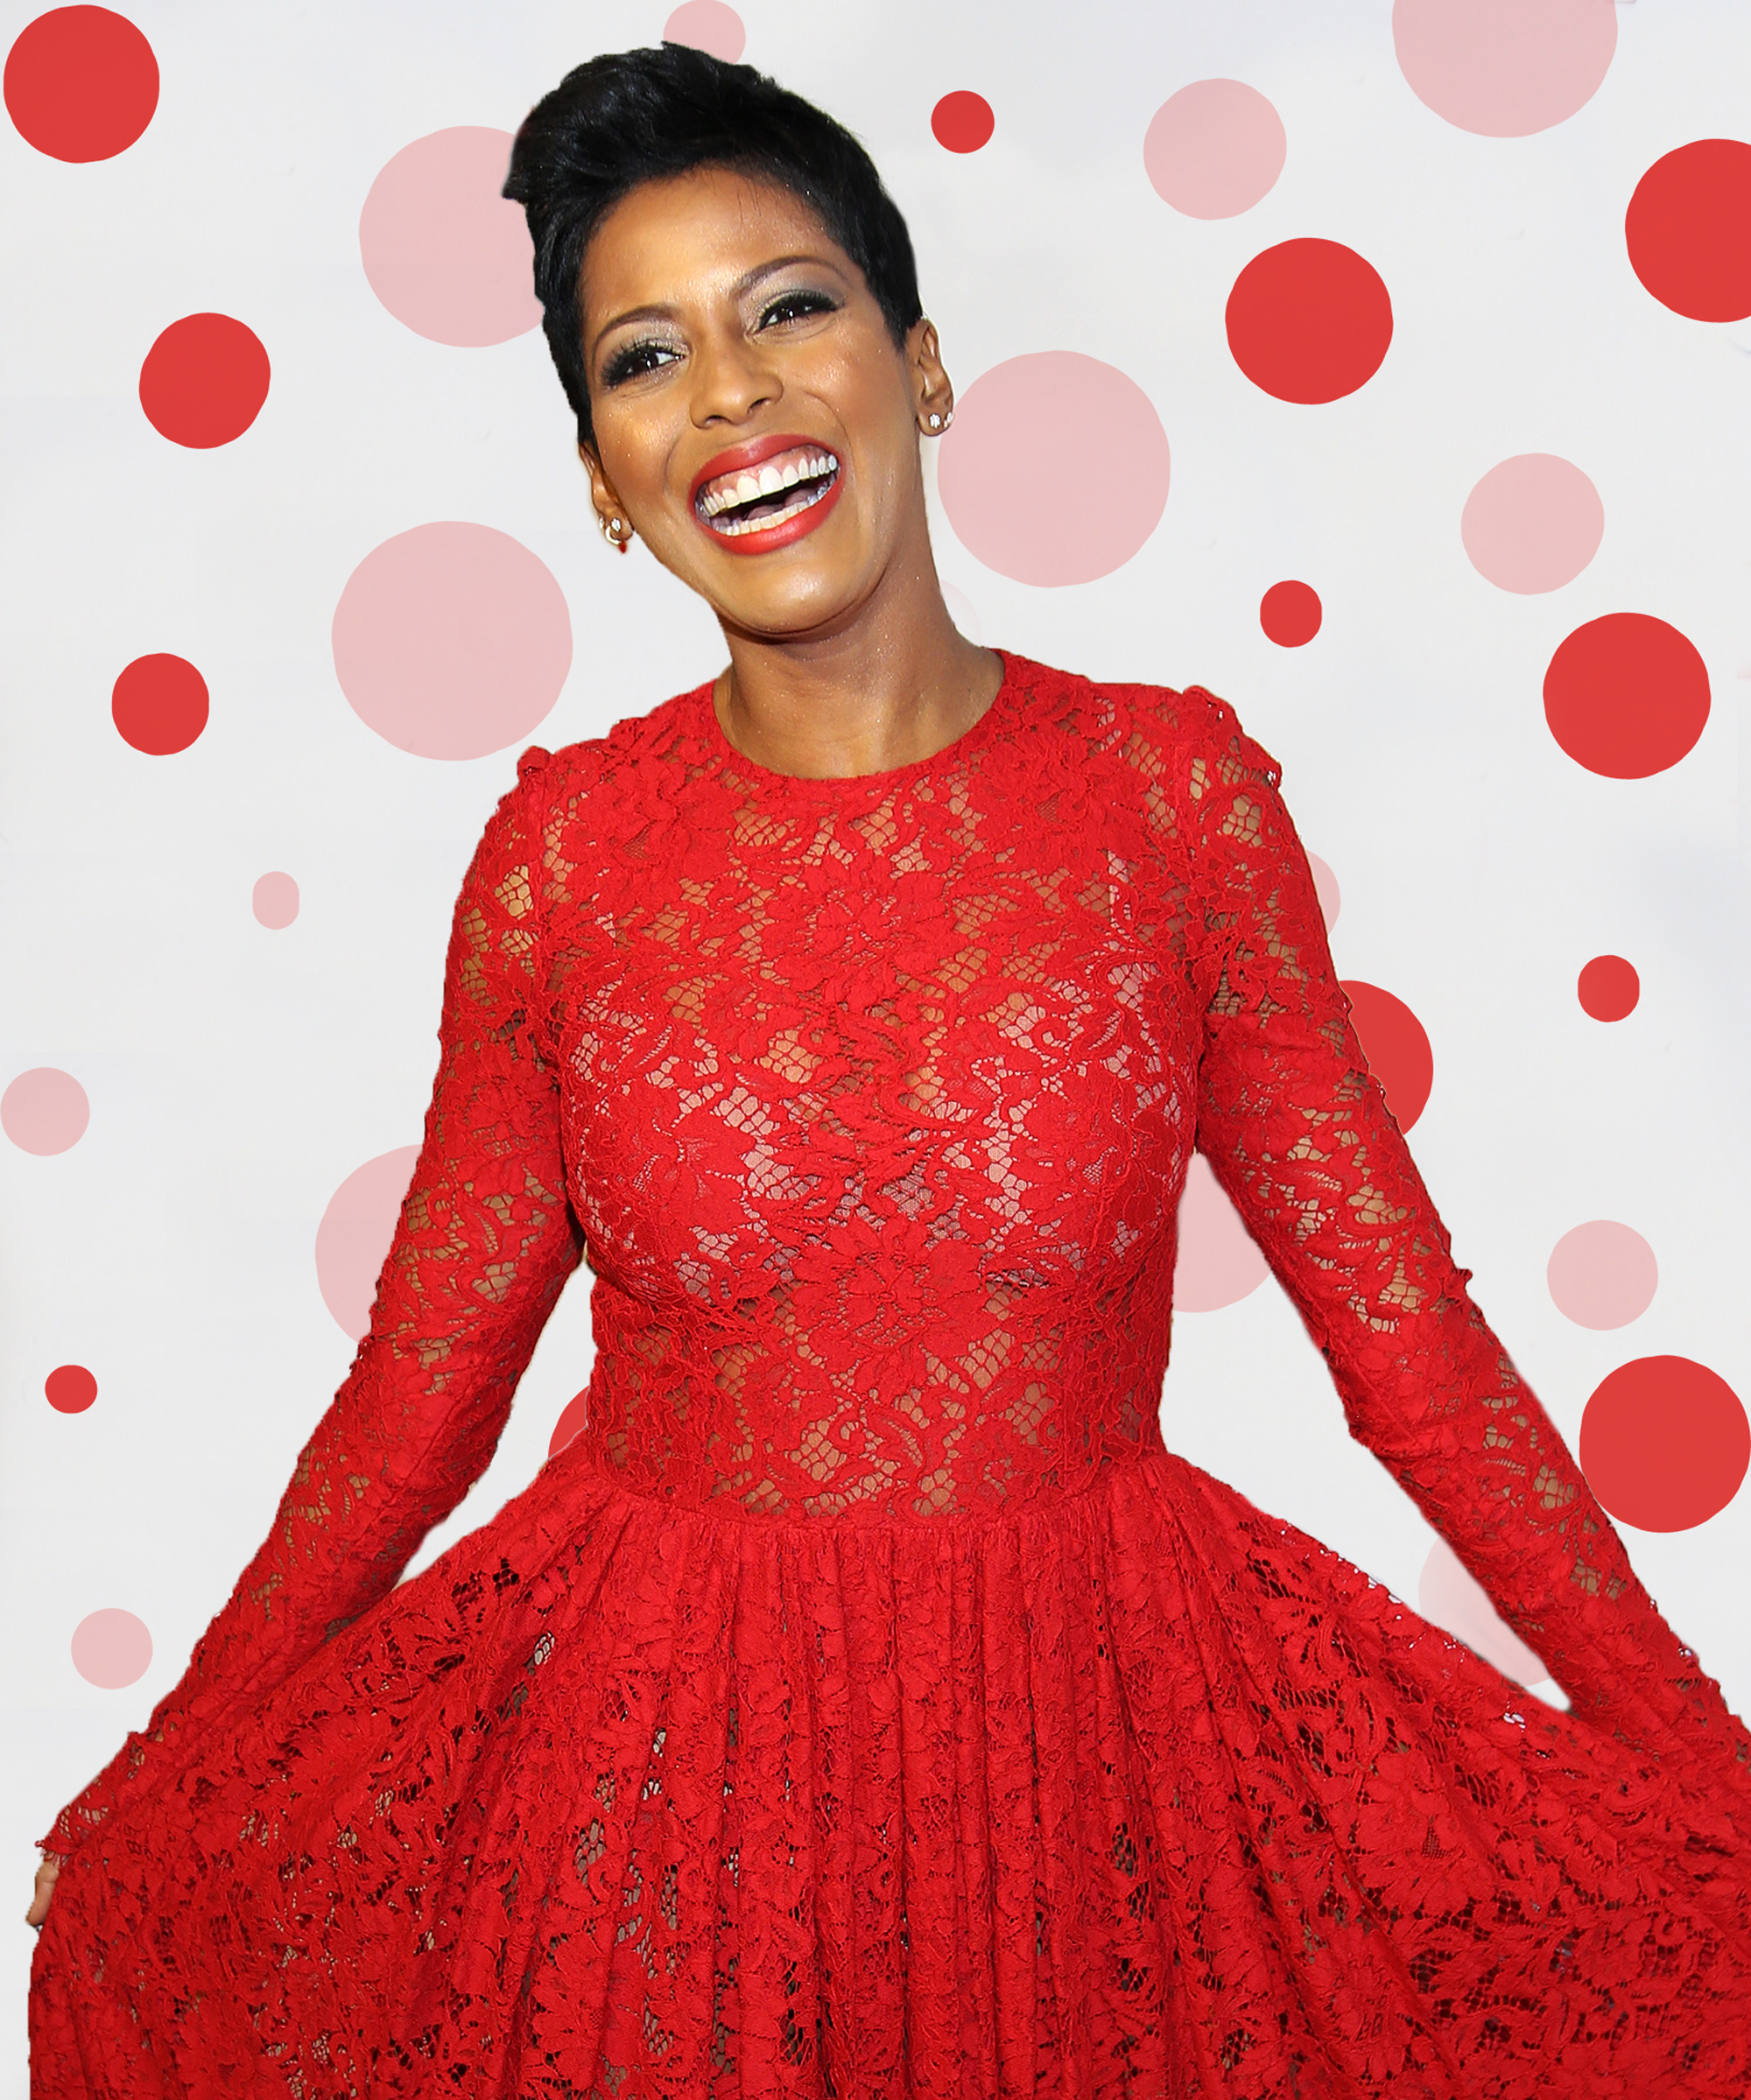 c6e63a81d551 Tamron Hall Is Killing It On Instagram & You're Jealous About It, Boo